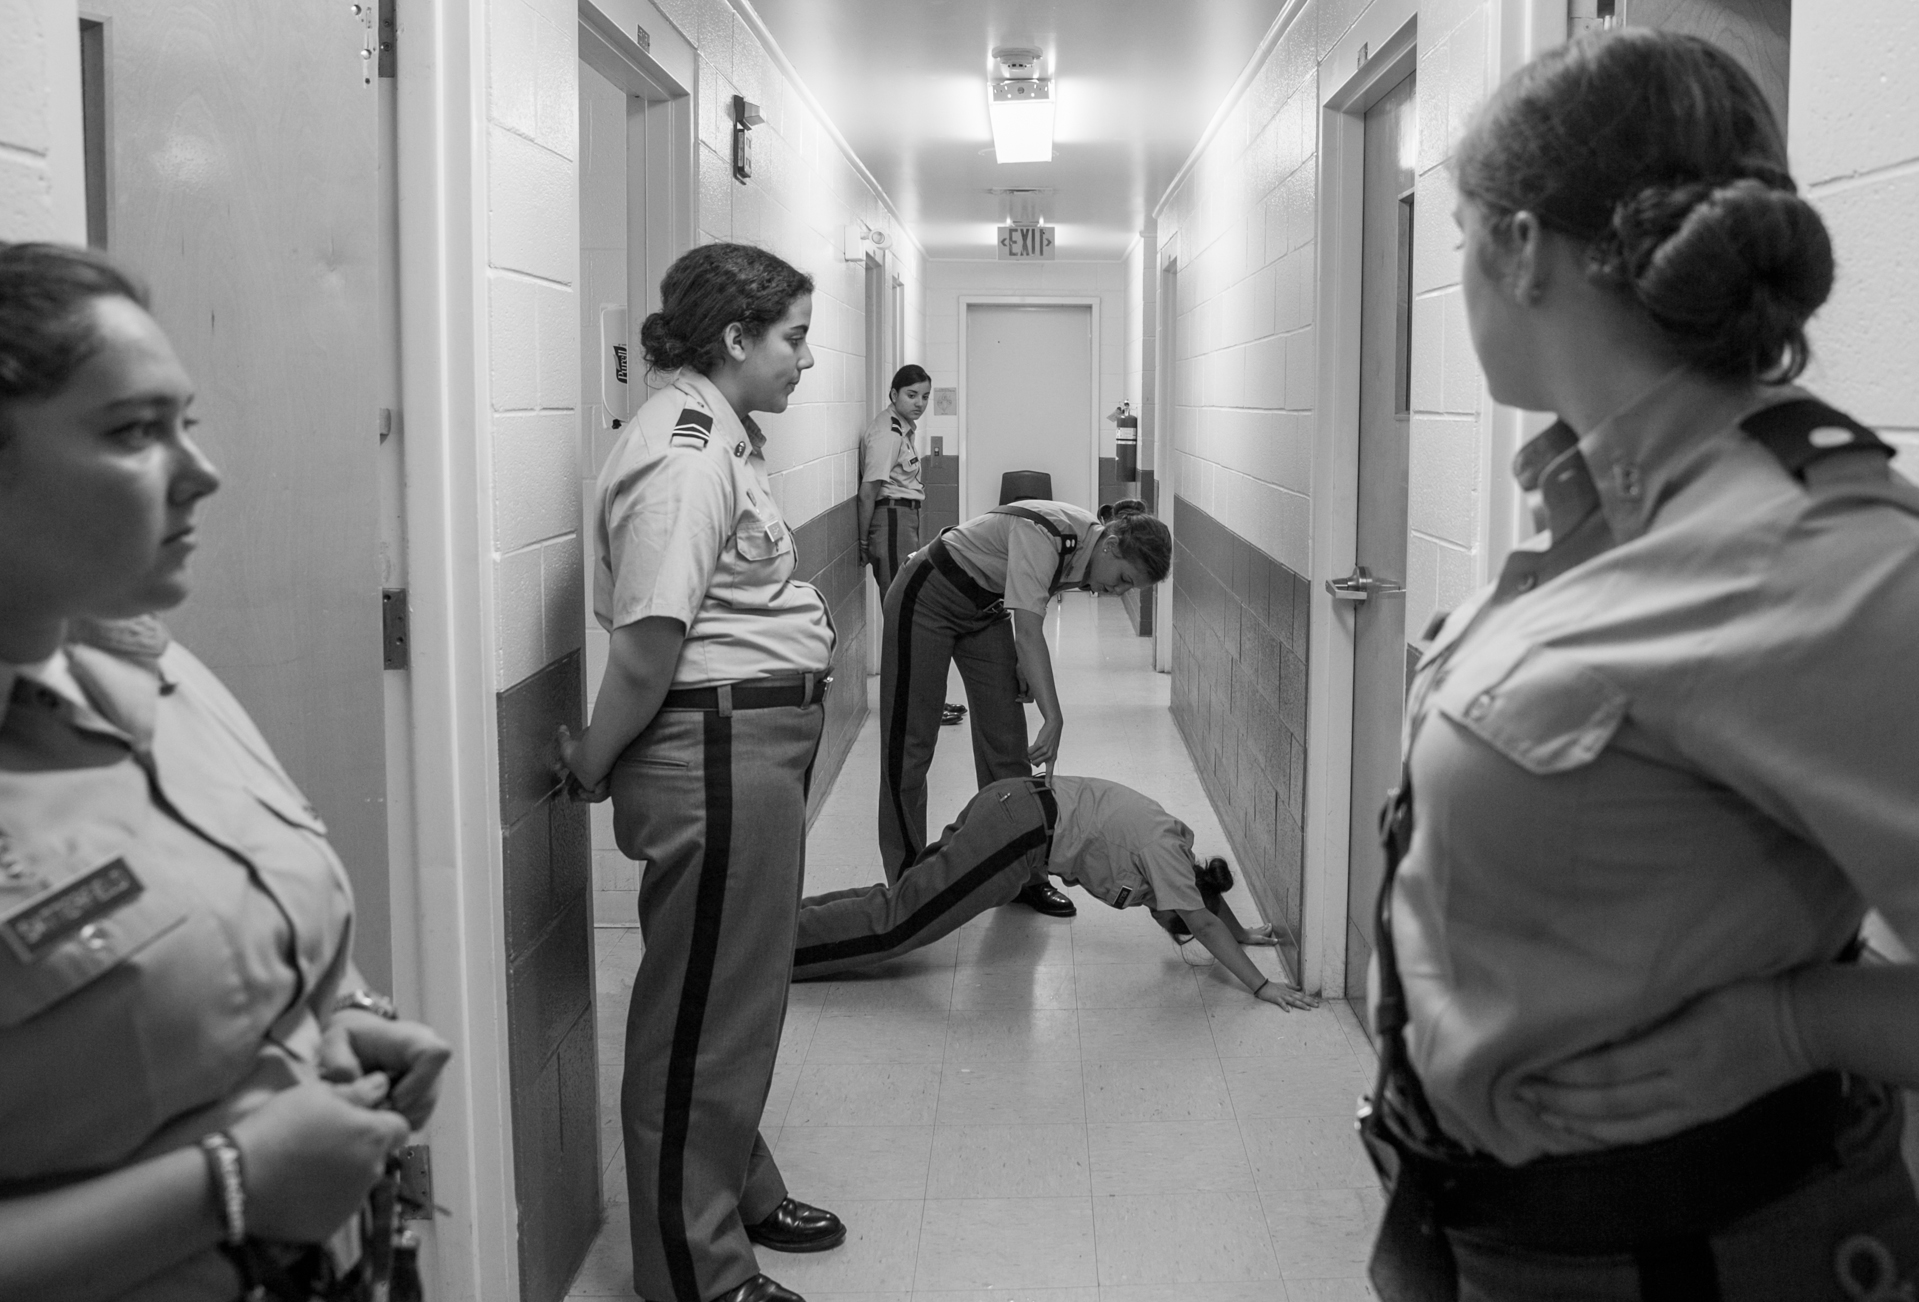 Capt. Whitehead makes sure that a younger cadet does proper pushups while other cadets in the dorm wait for room inspection. The cadet was ordered to do pushups because her room was not properly cleaned prior to room inspection.